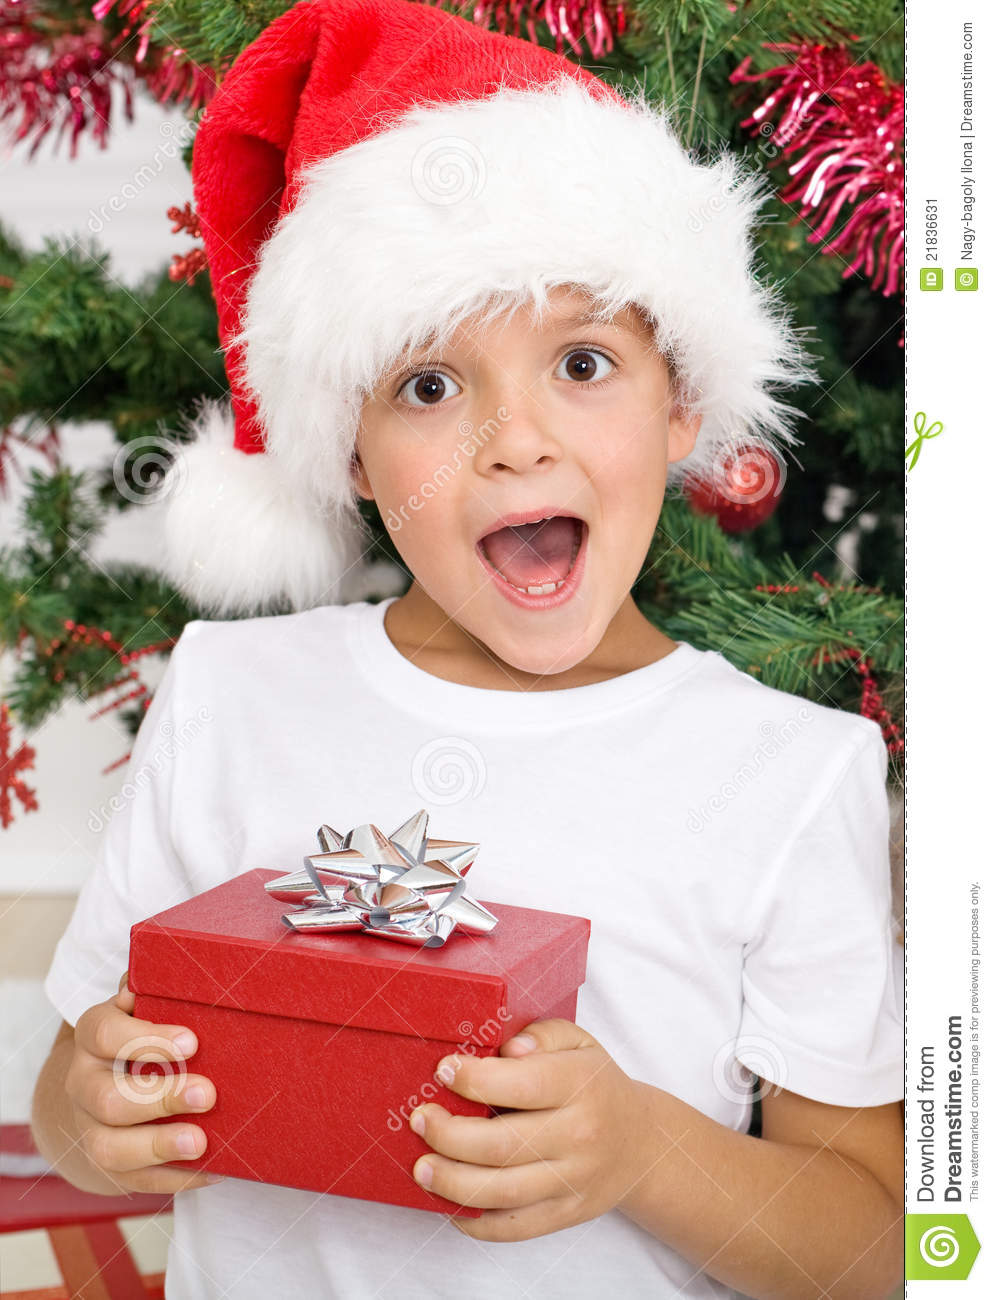 Happy Surprised Kid With Christmas Present Stock Image - Image of ...